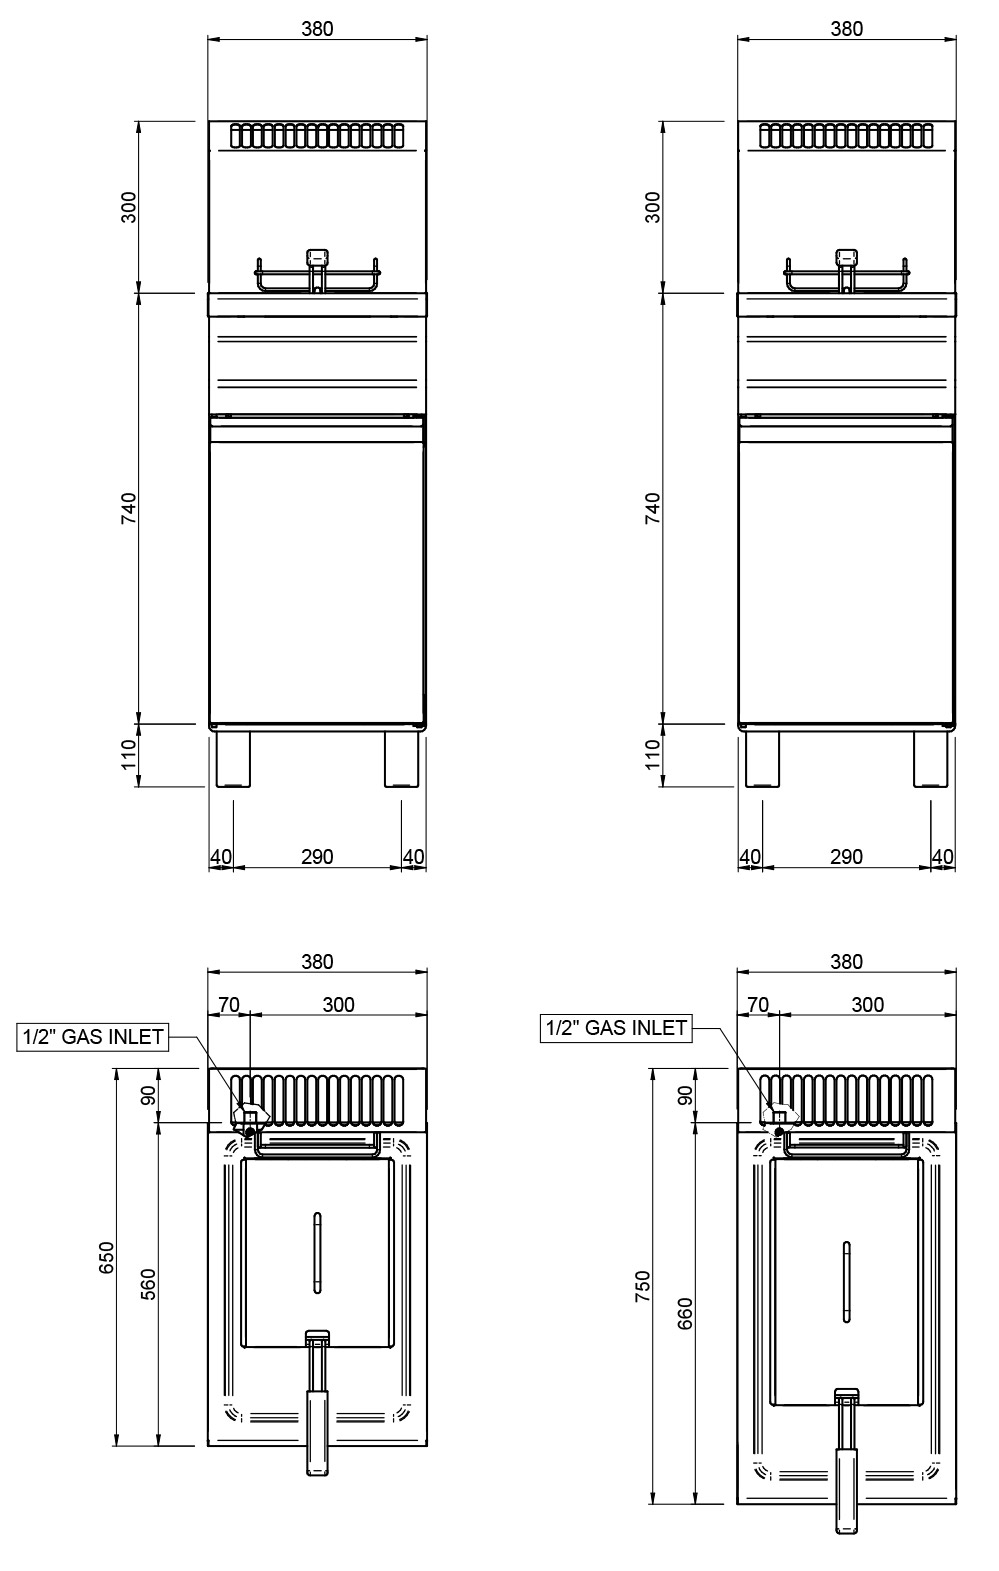 MBM Fryer Plan2